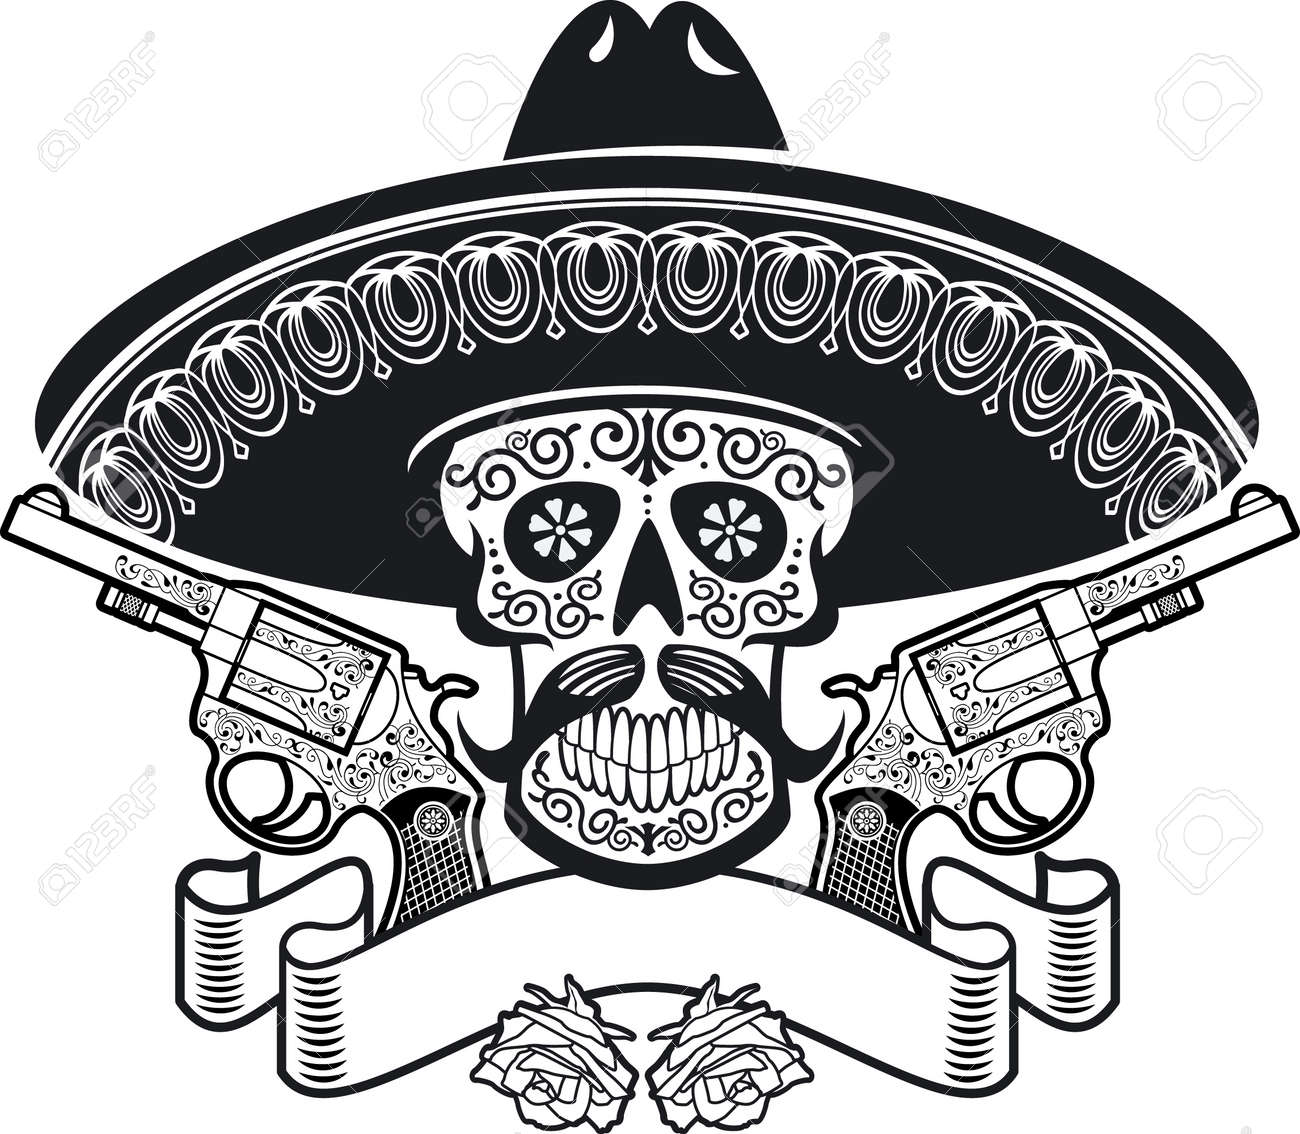 mexican sugar skull with sombrero, roses, guns and banner - 168226165